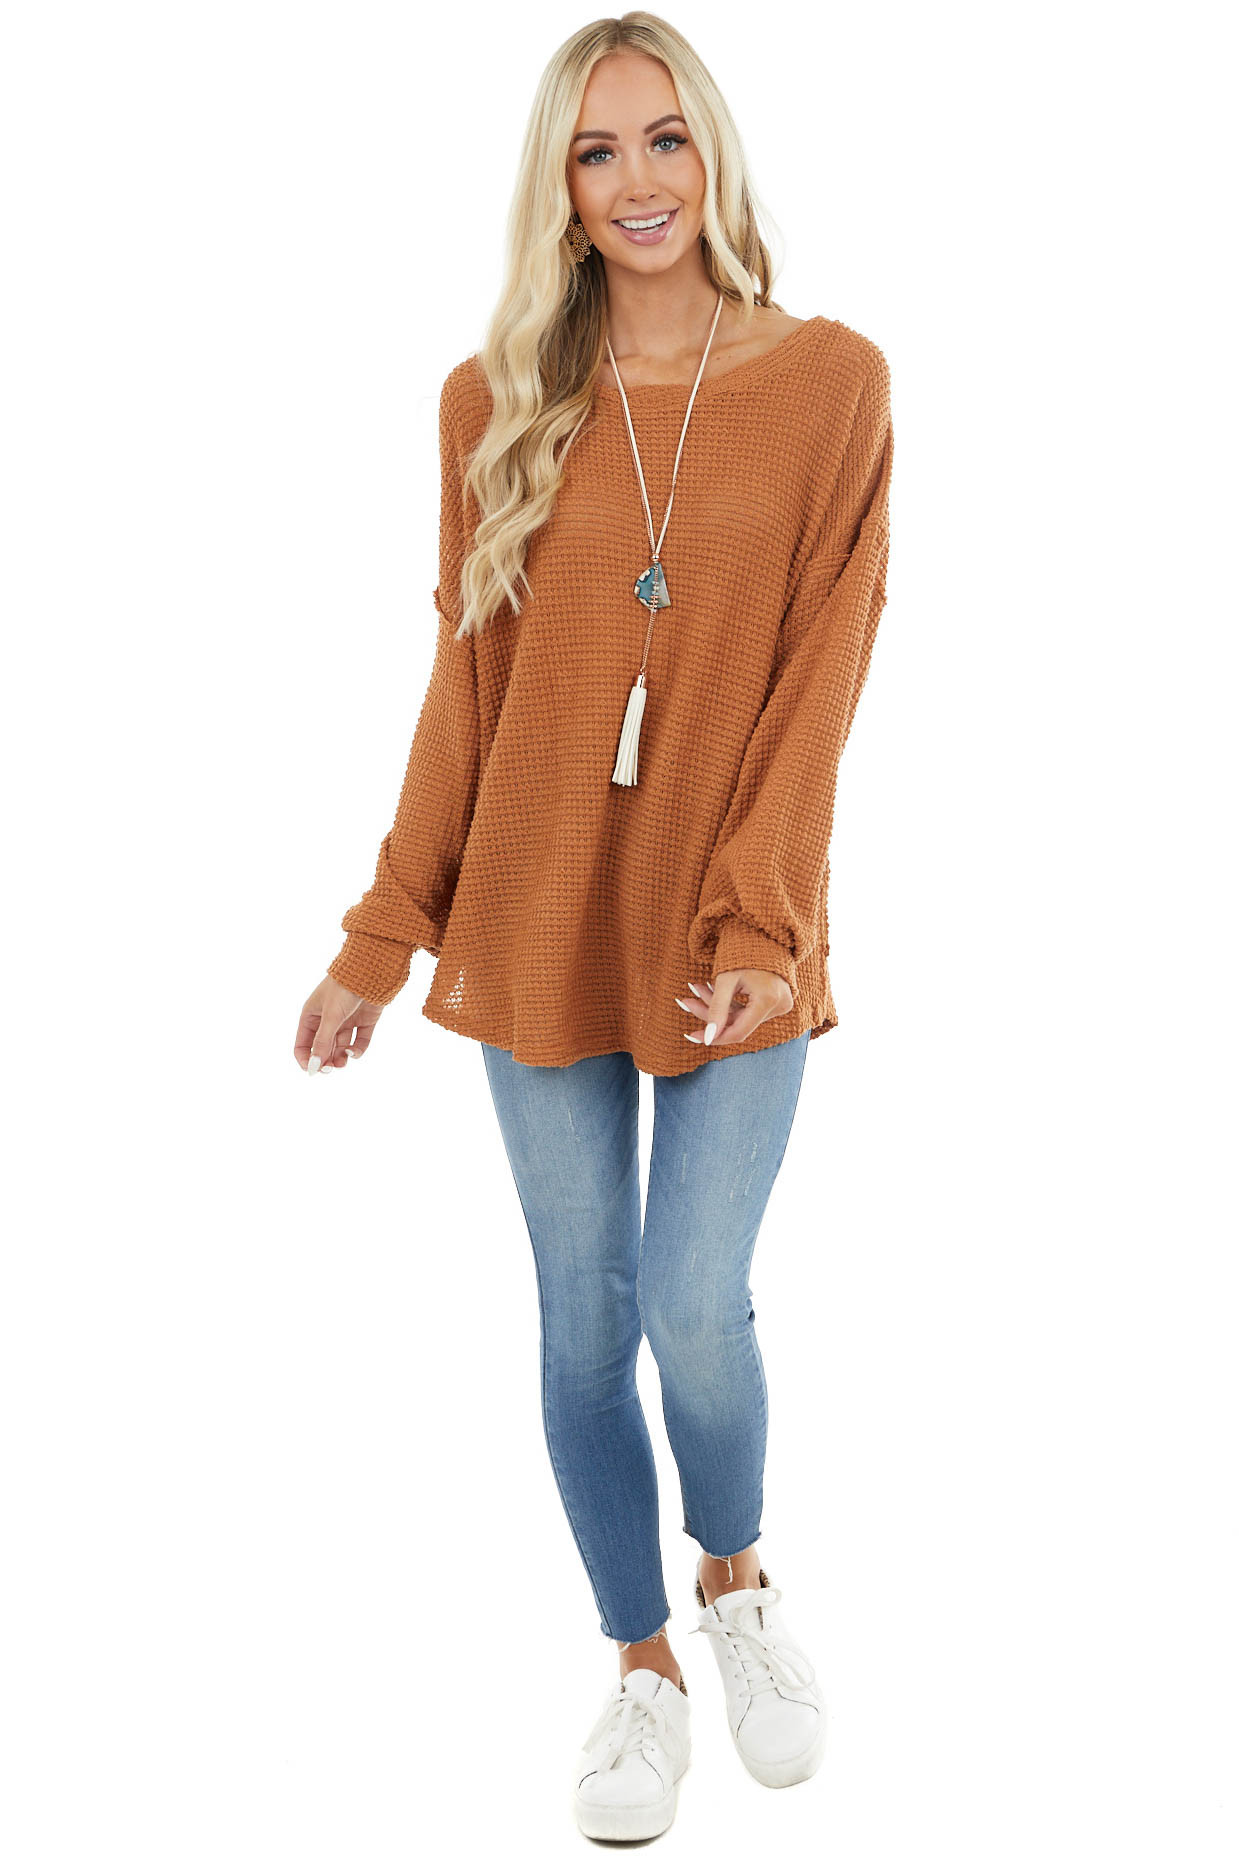 Caramel Oversized Waffle Knit Top with Bubble Sleeves